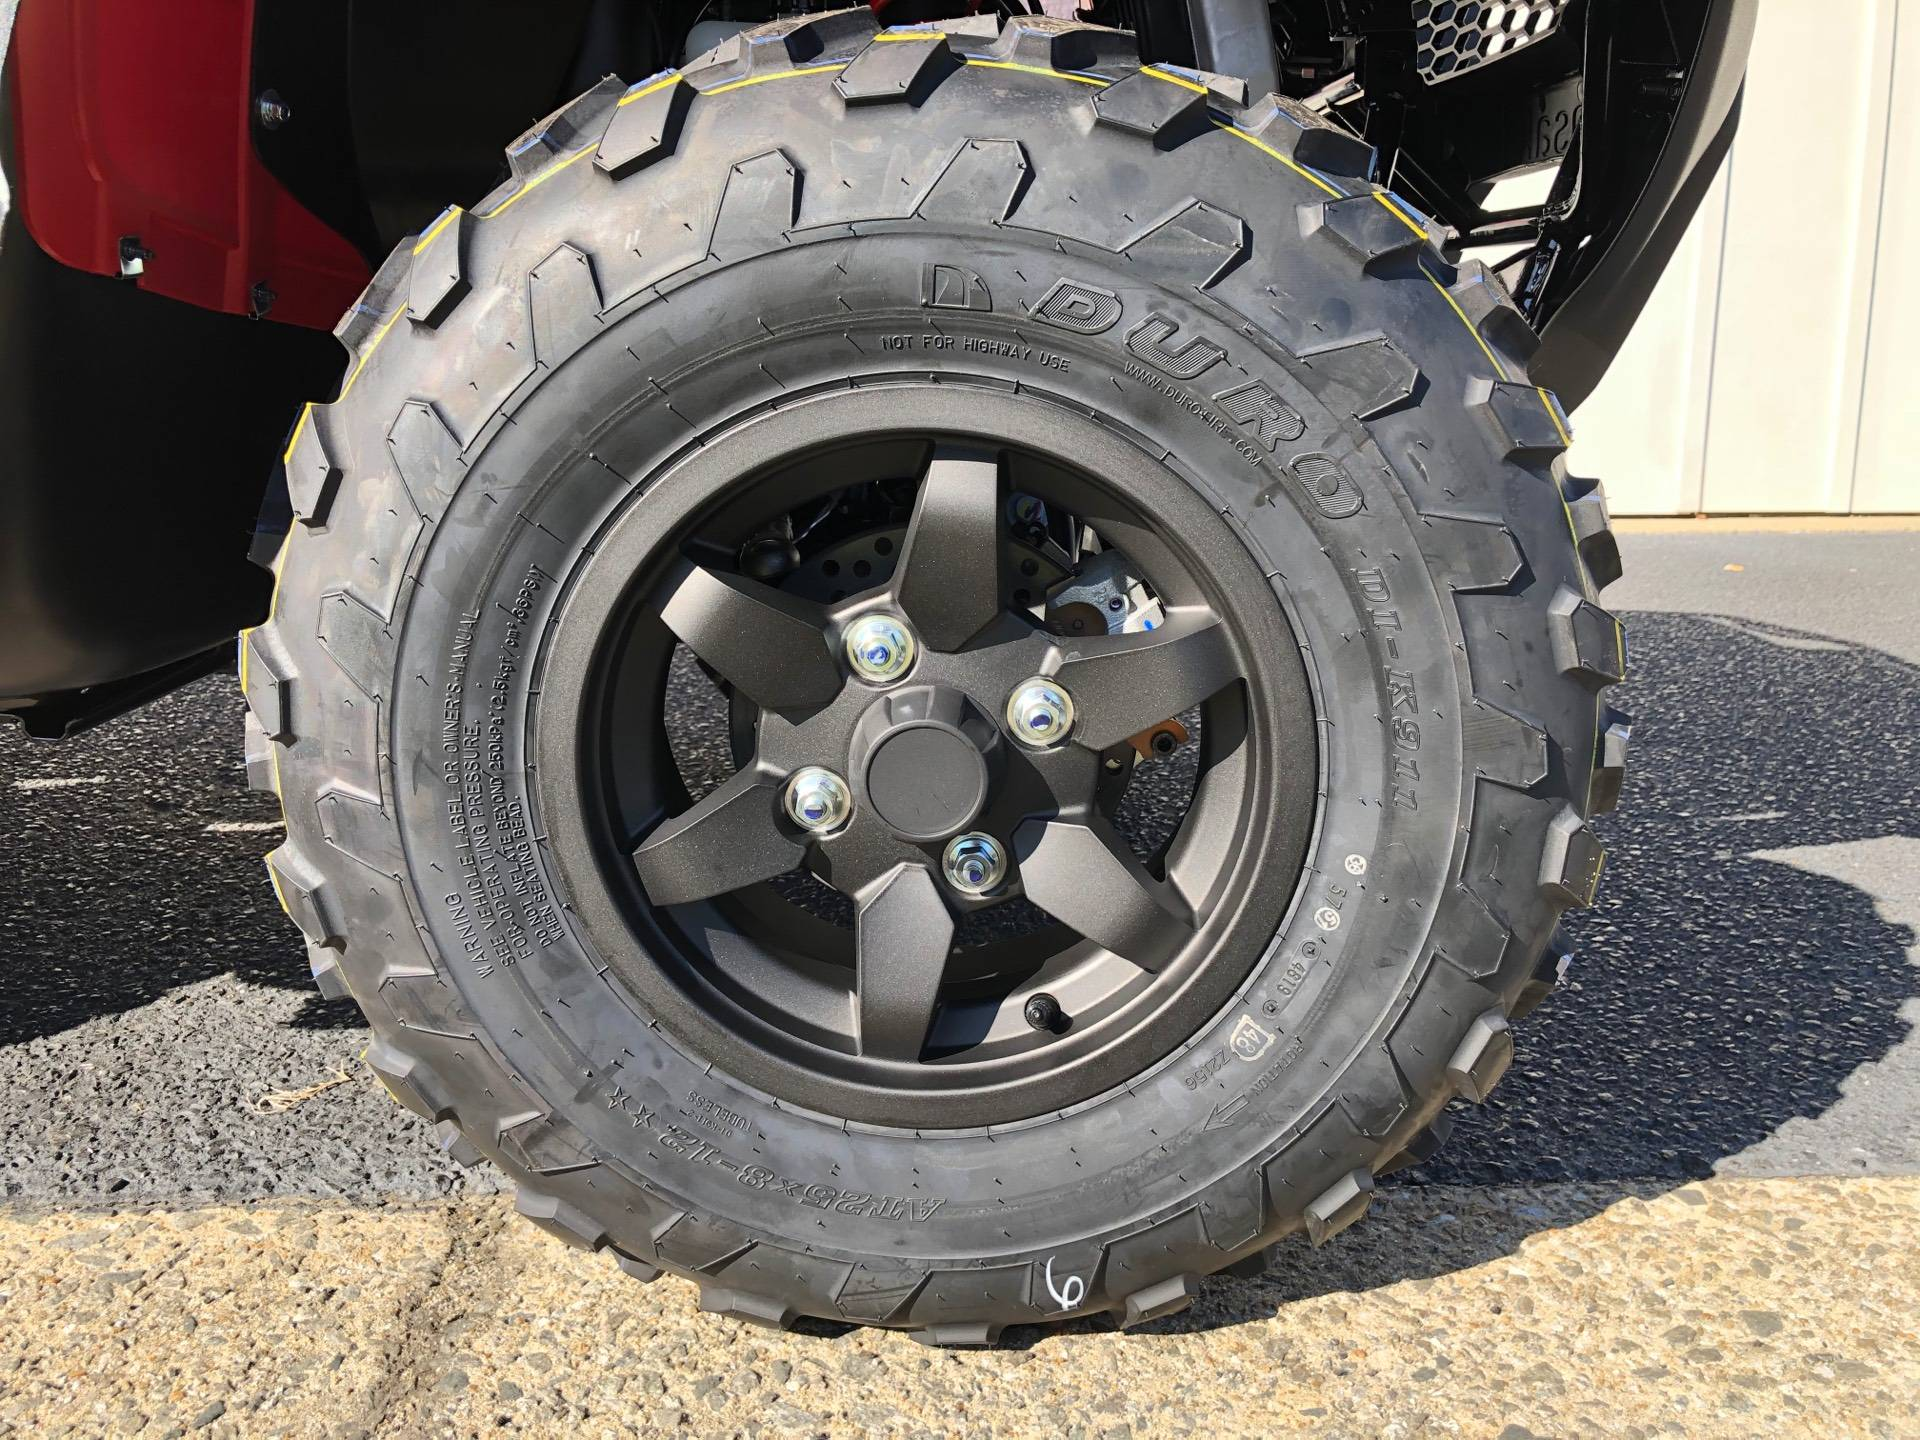 2021 Kawasaki Brute Force 750 4x4i in Greenville, North Carolina - Photo 13